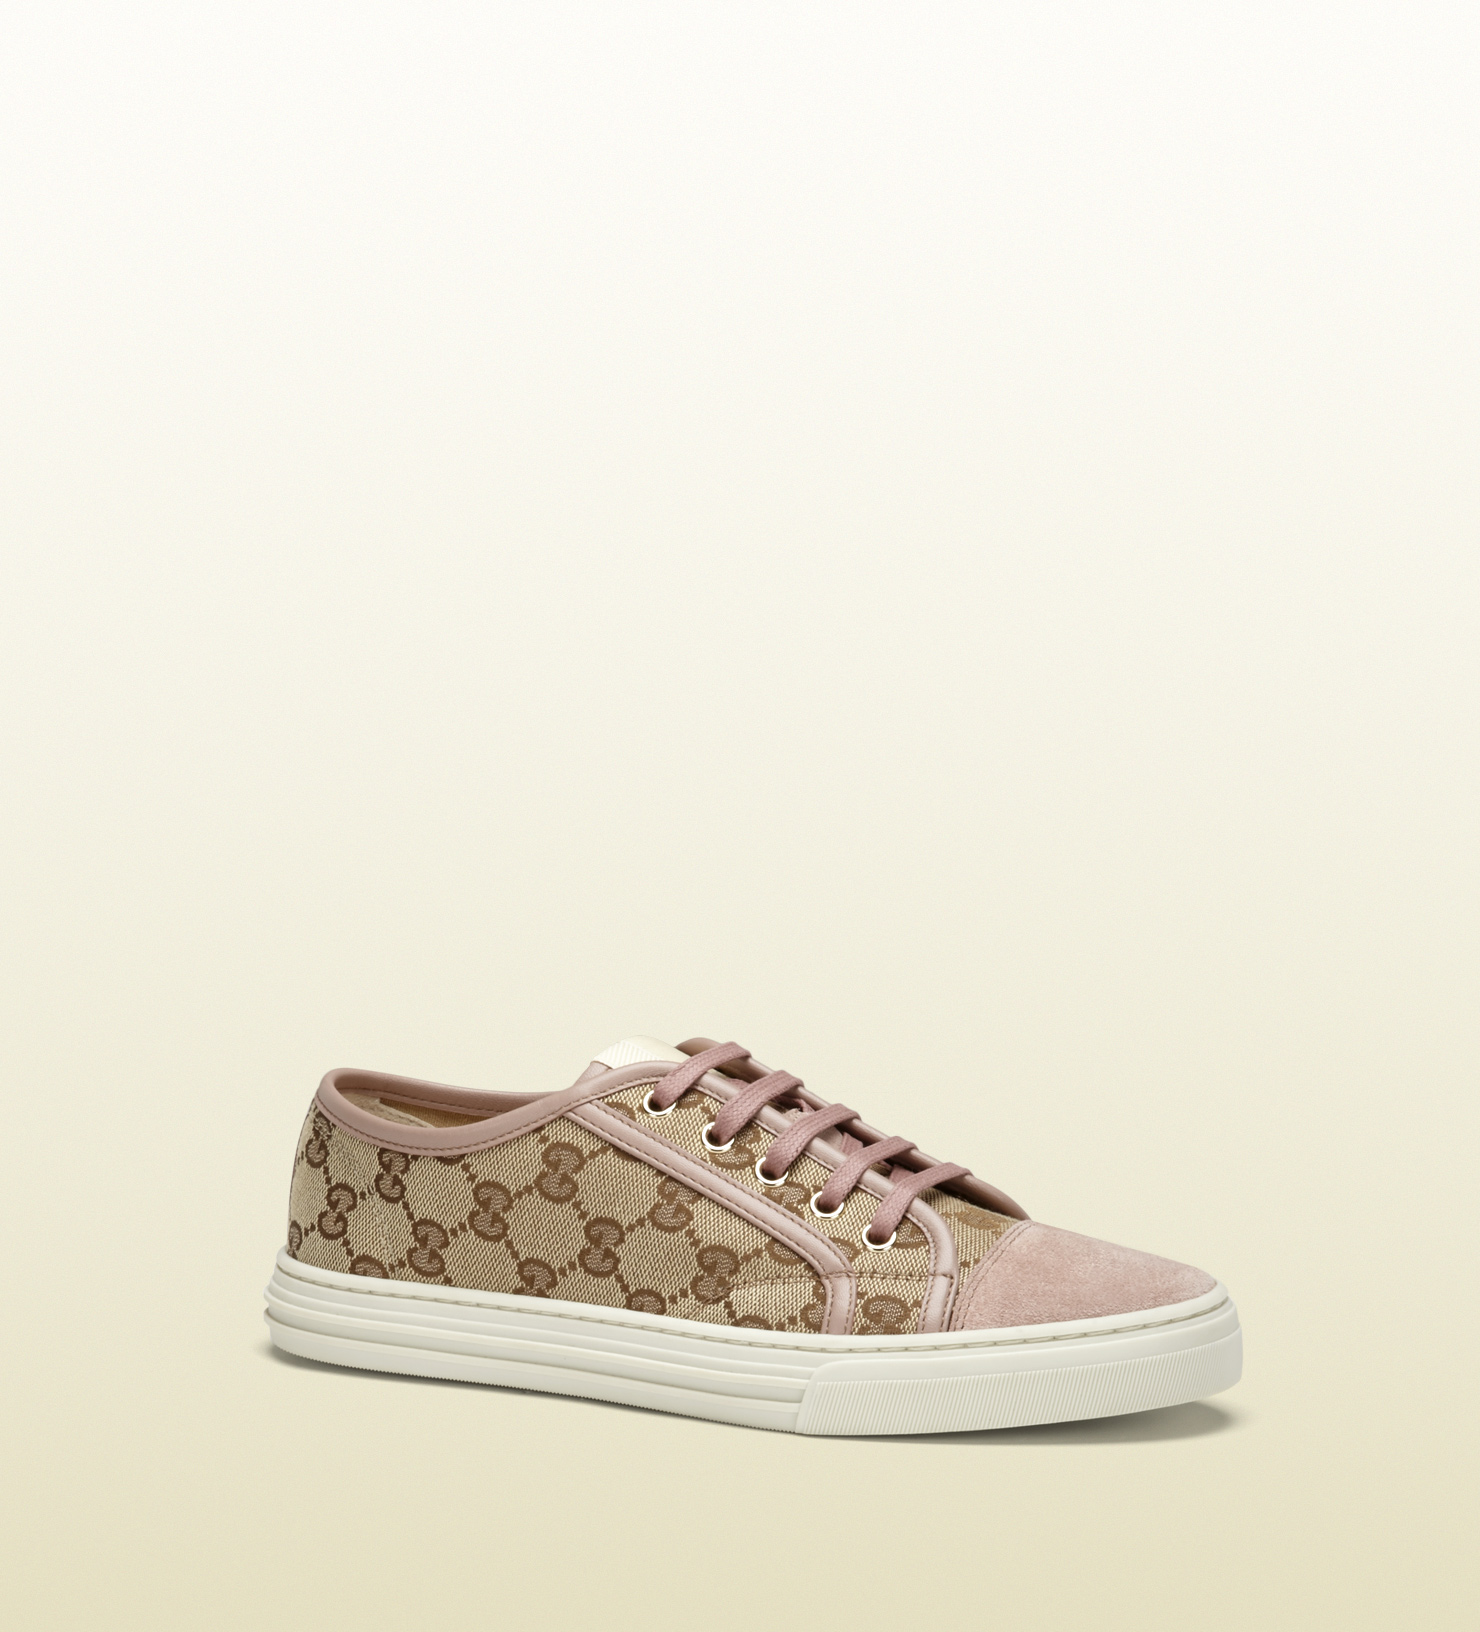 Pink Gucci Tennis Shoes